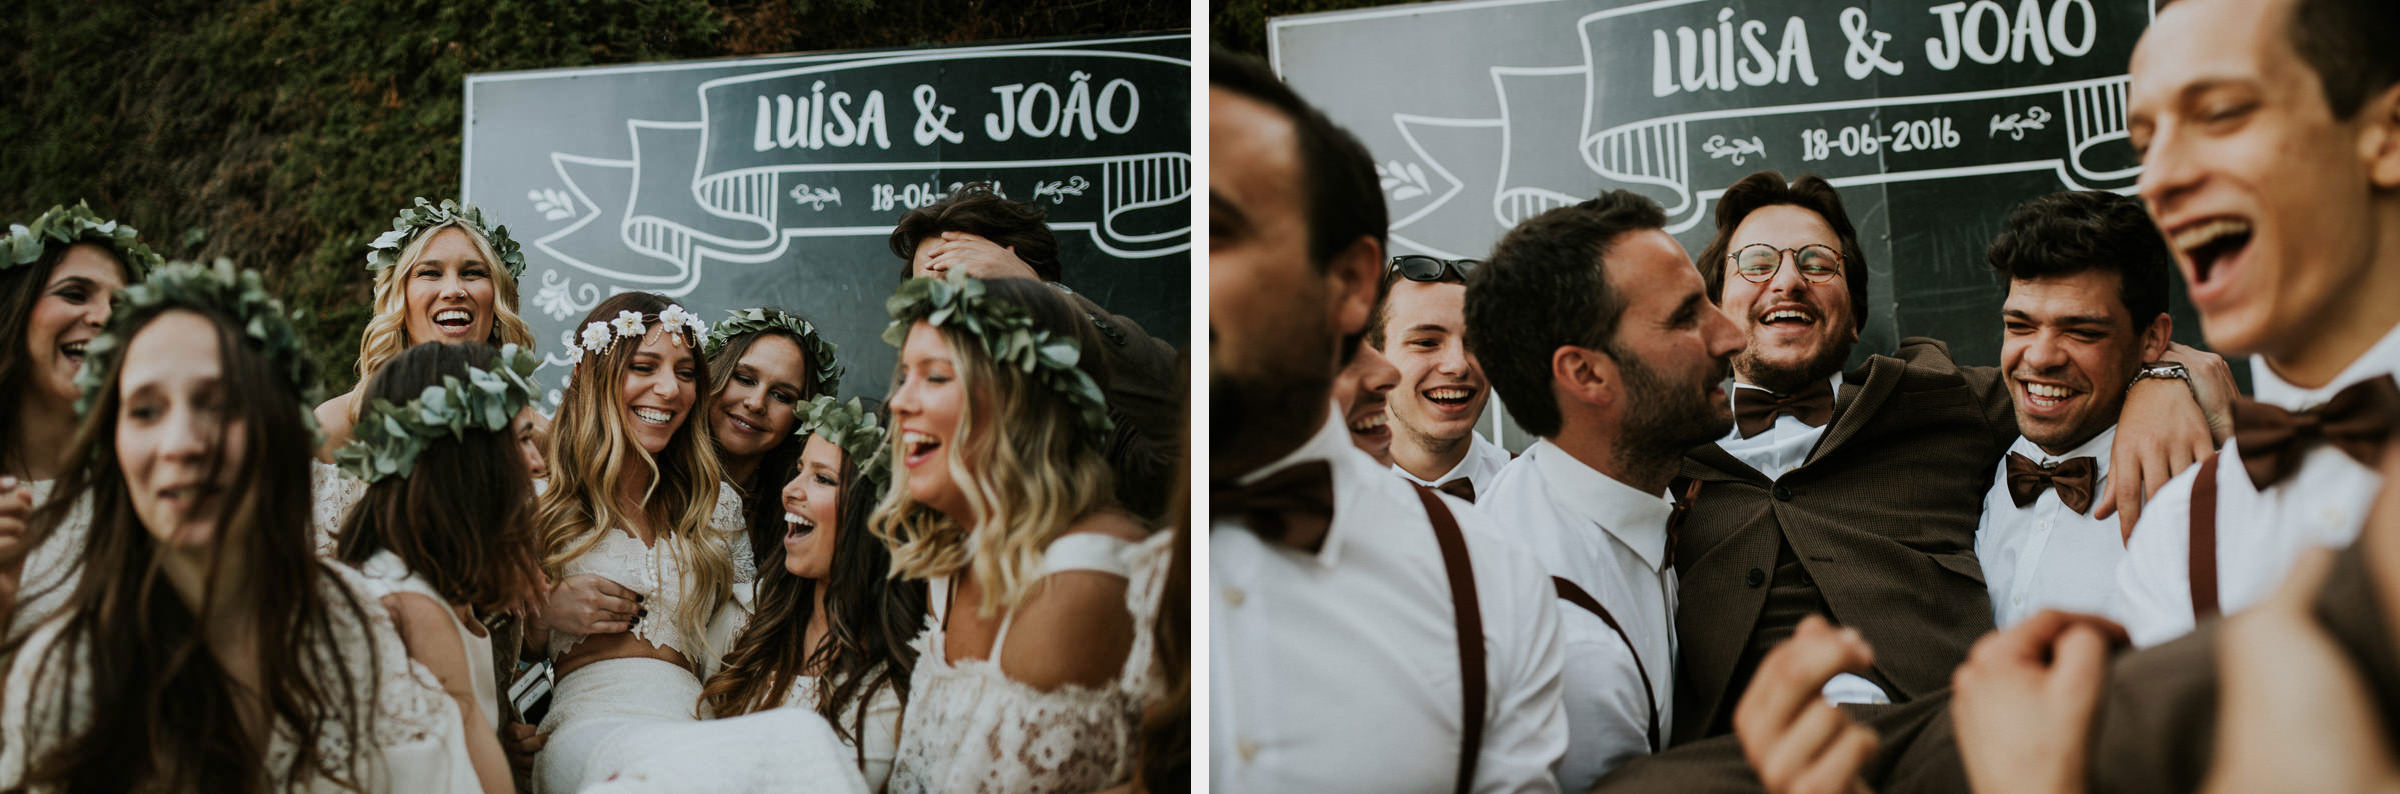 two photo montage of happy bride and groom rounded by their friends in their wedding